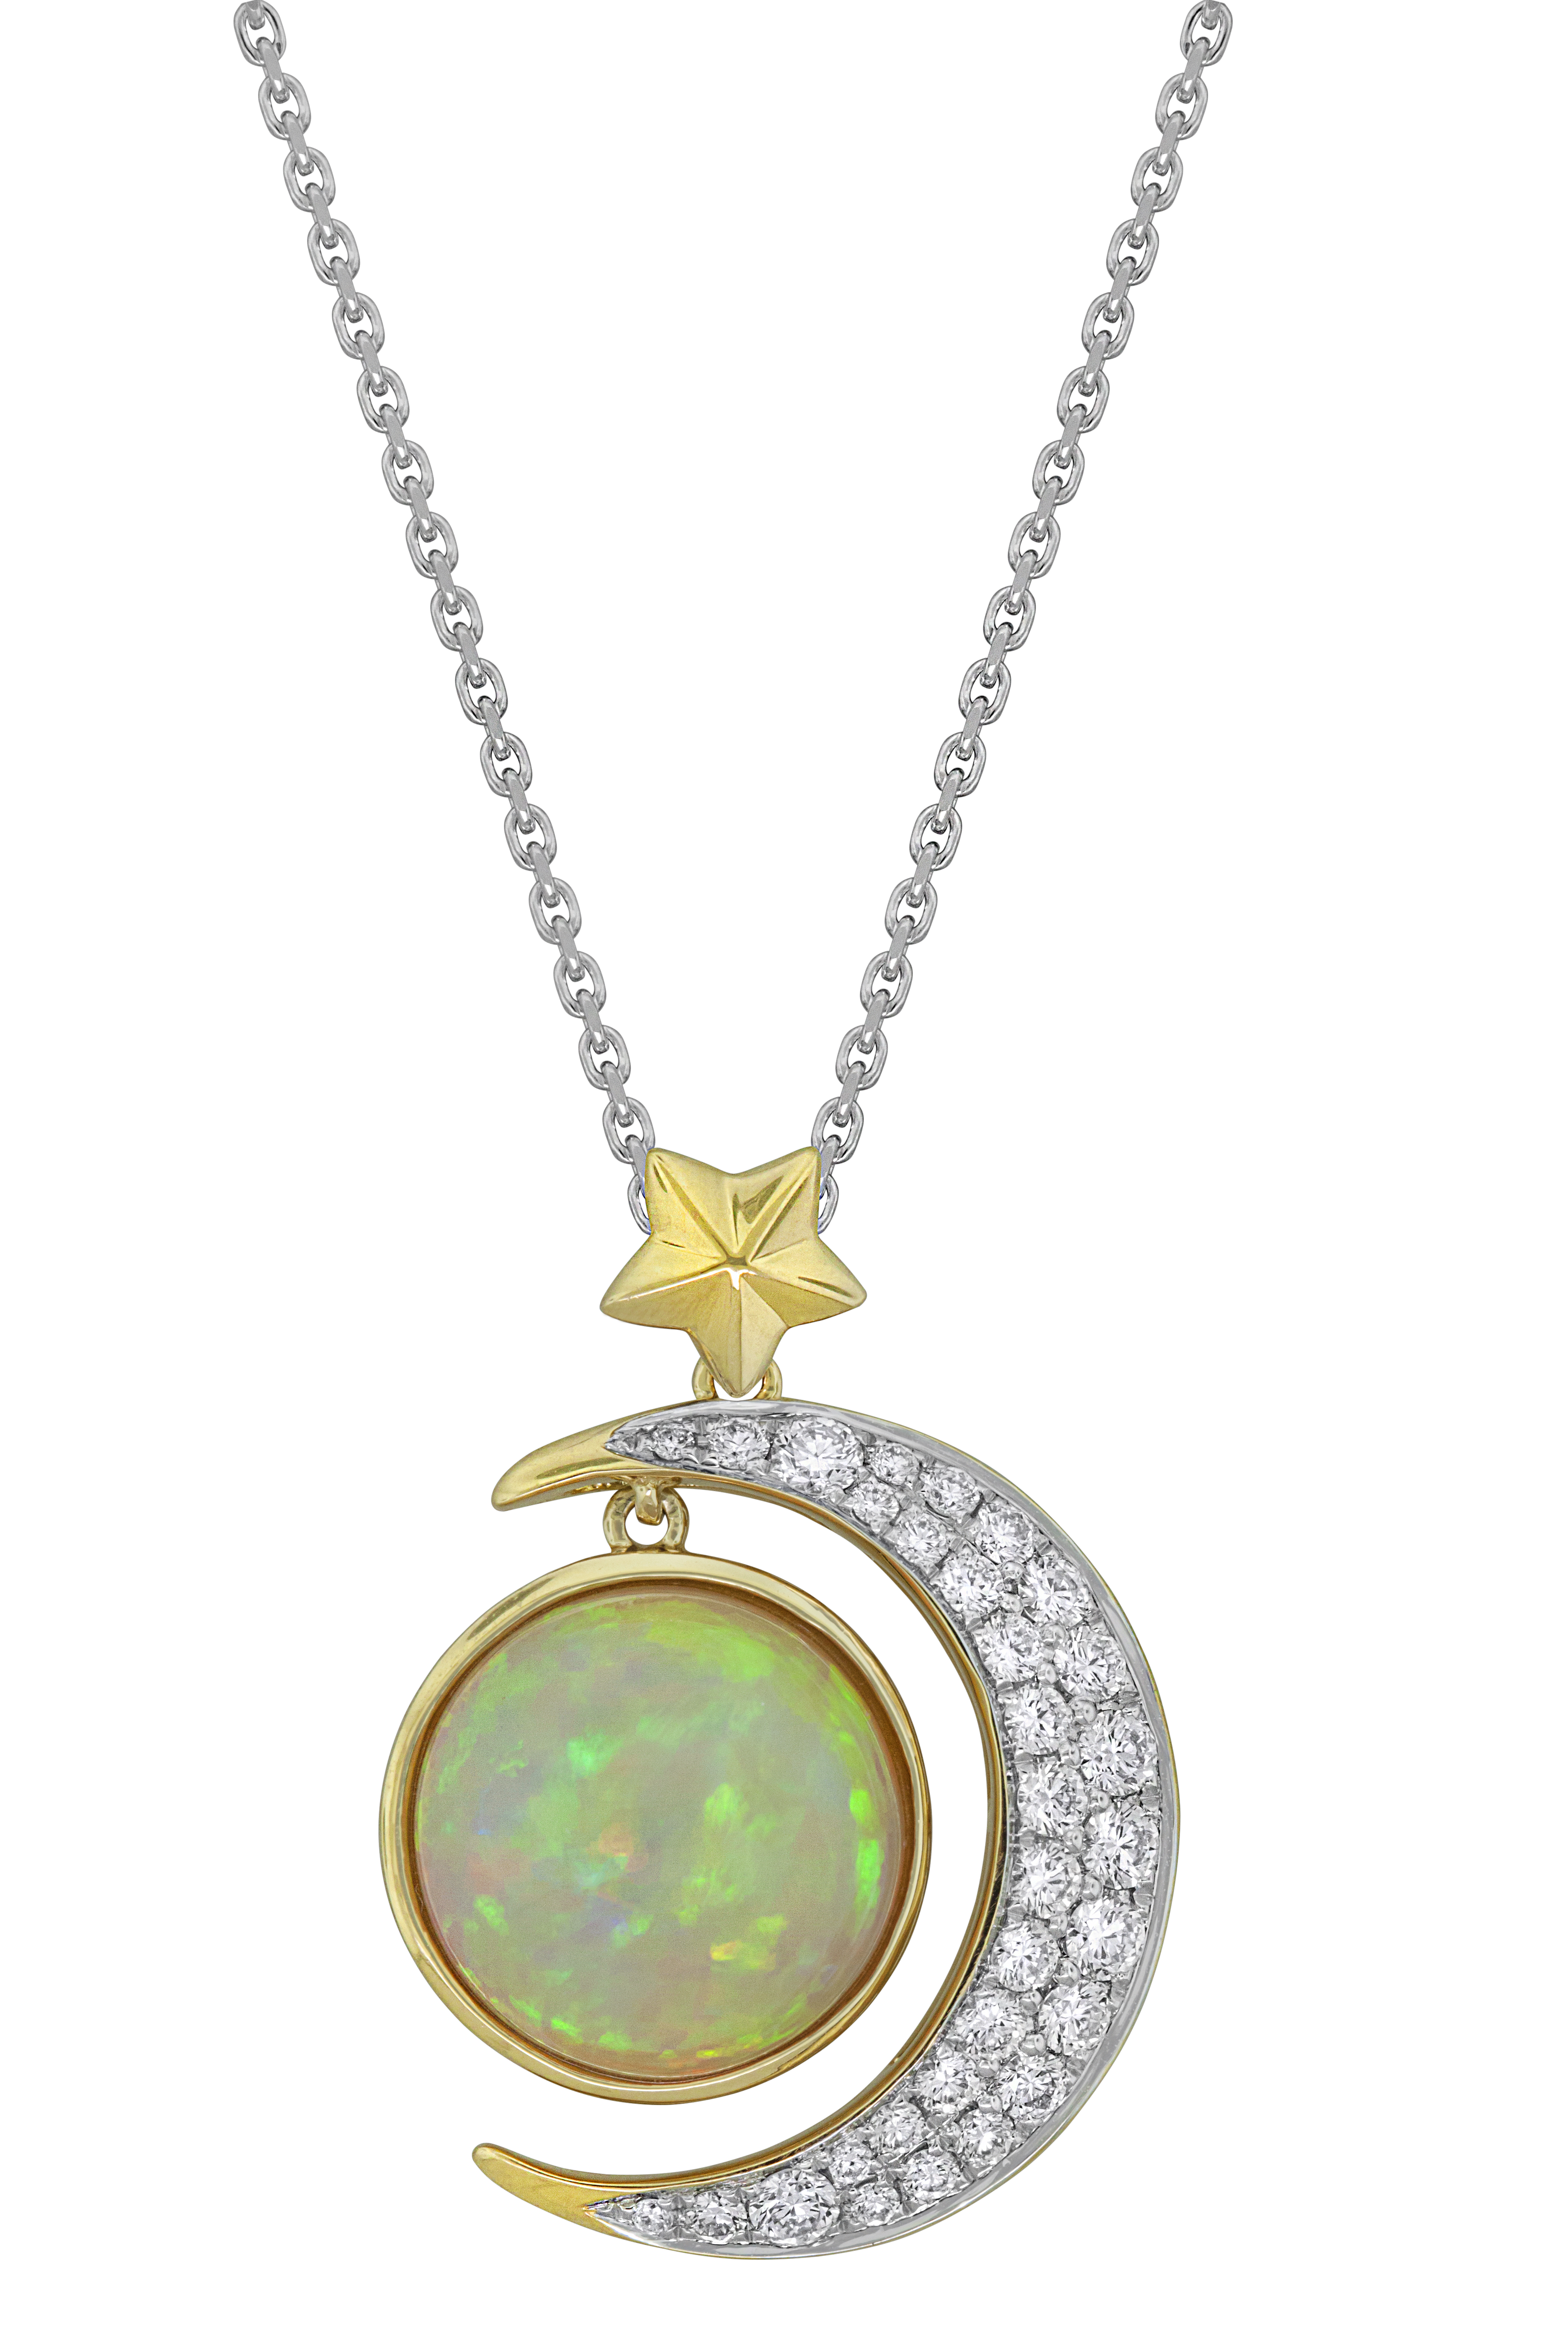 Spark opal crescent moon pendant #BRITTSPICK | JCK On Your Market